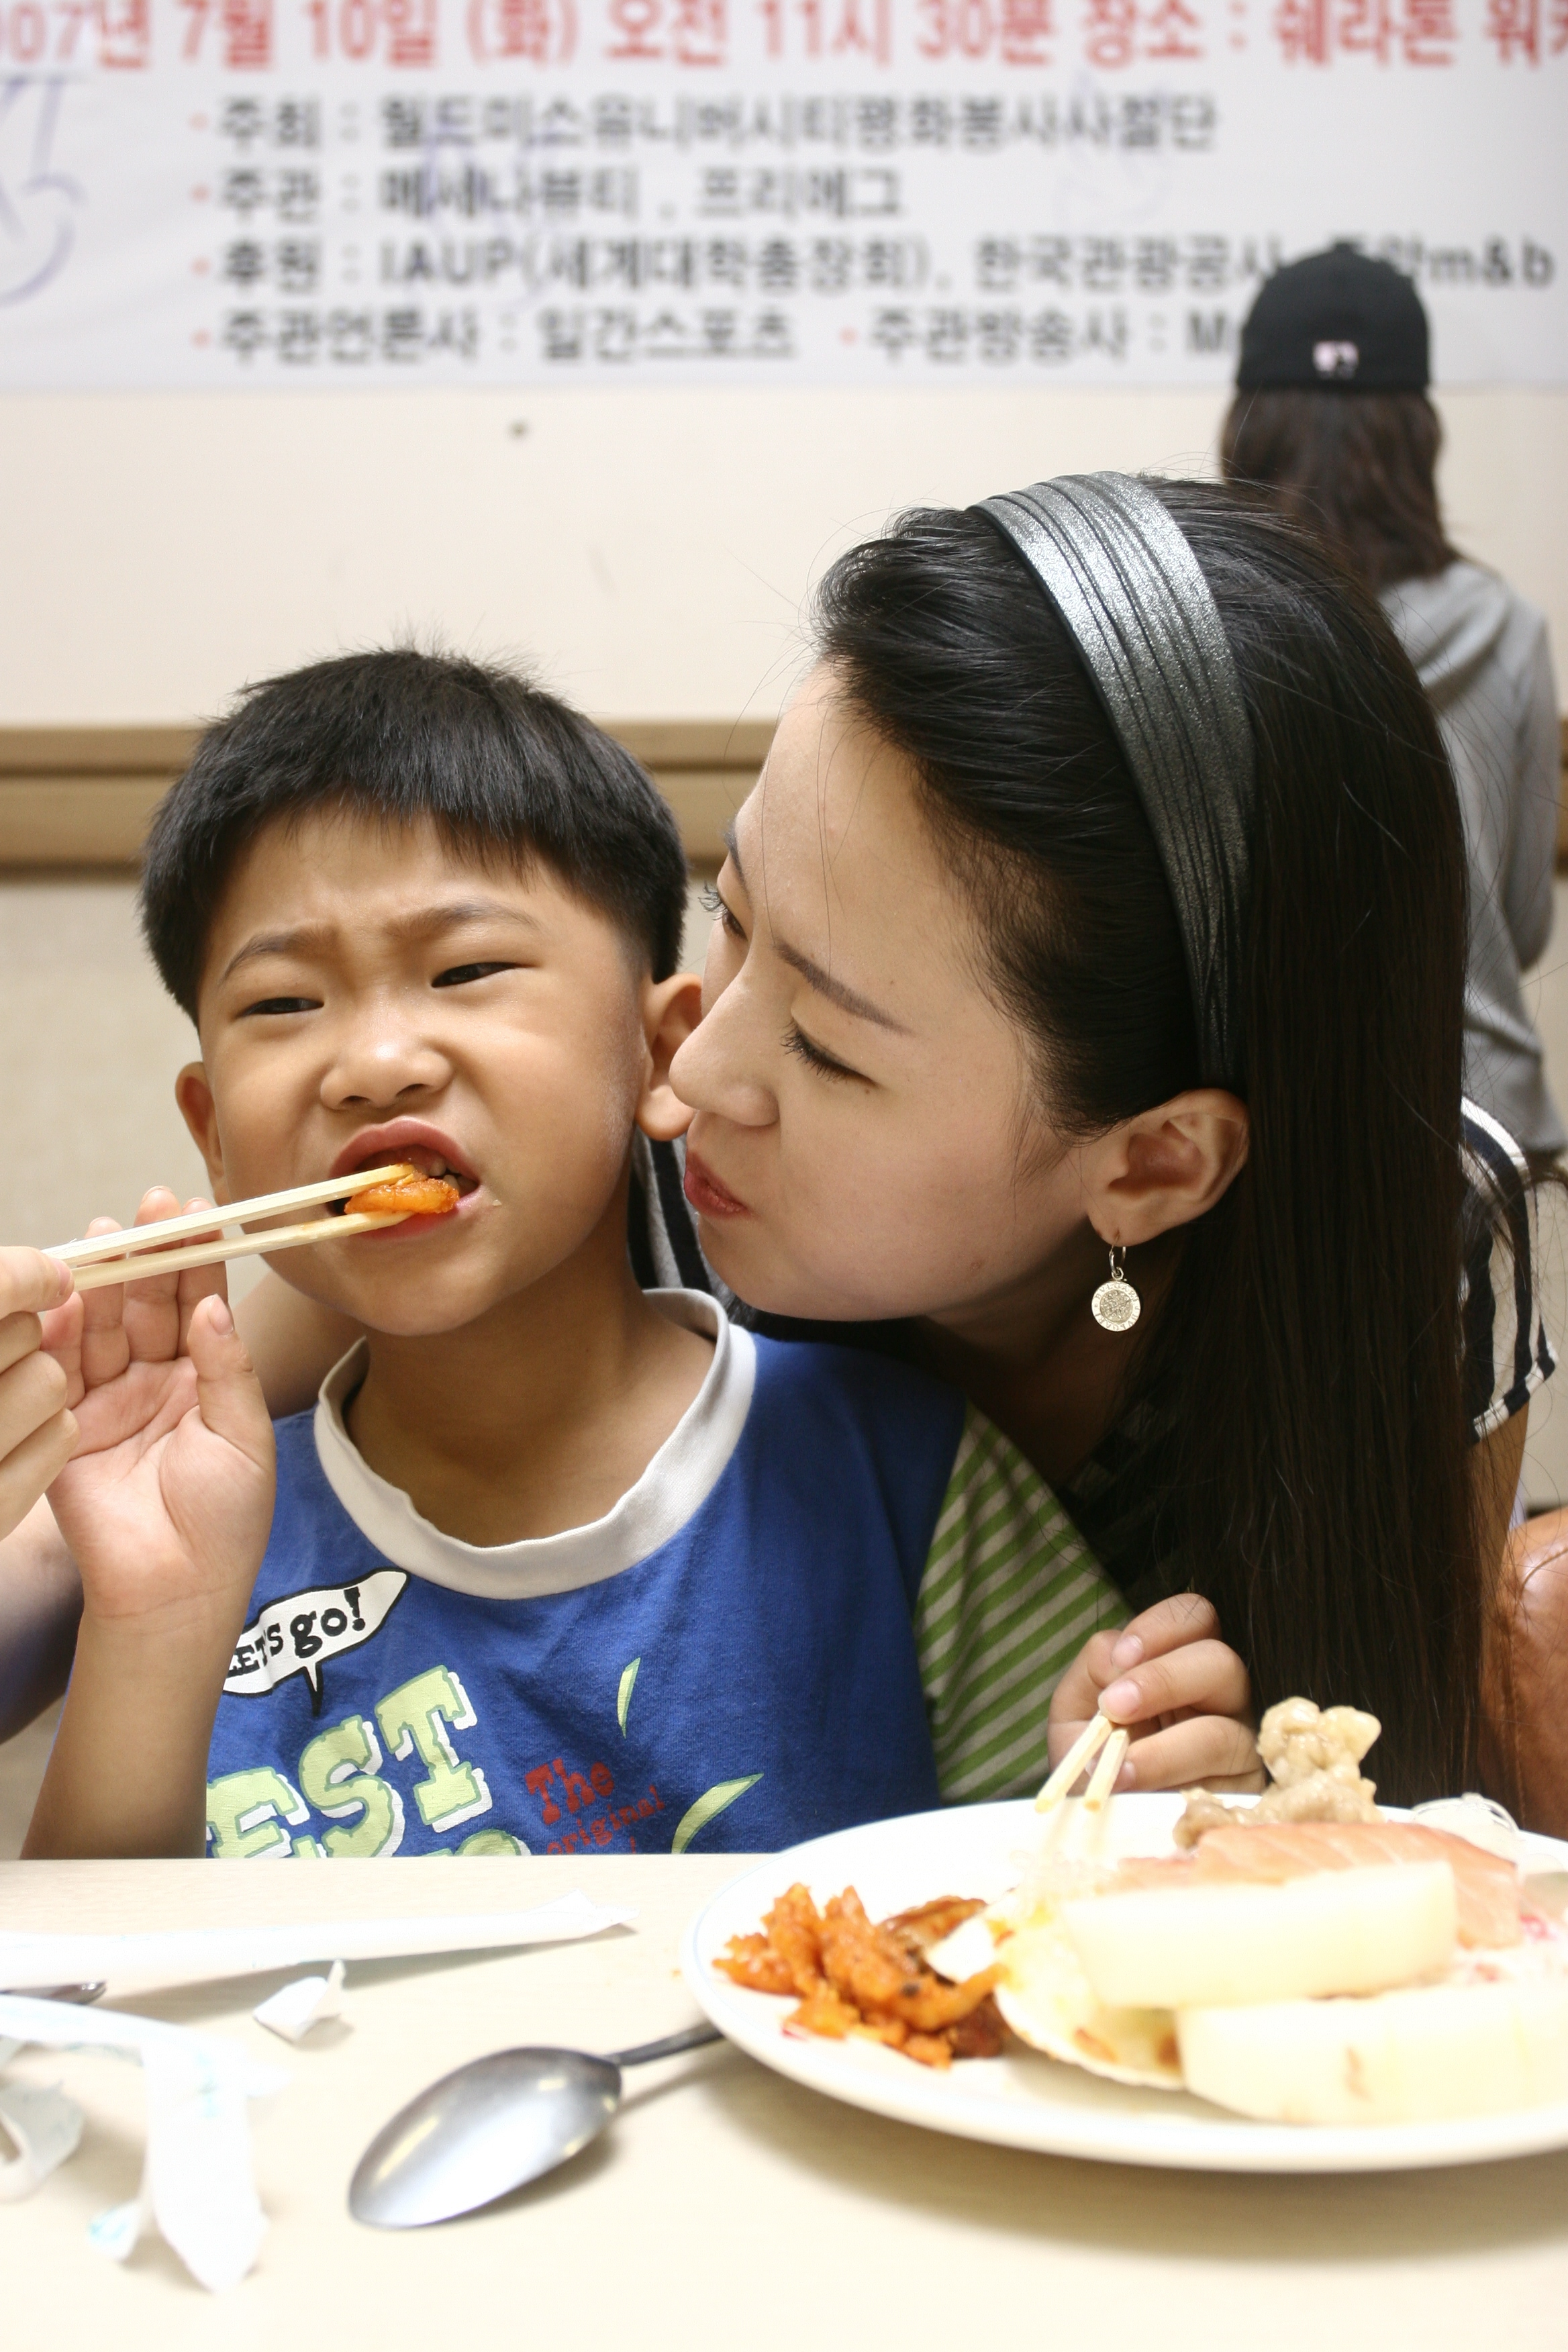 Visit the orphanage and dine together